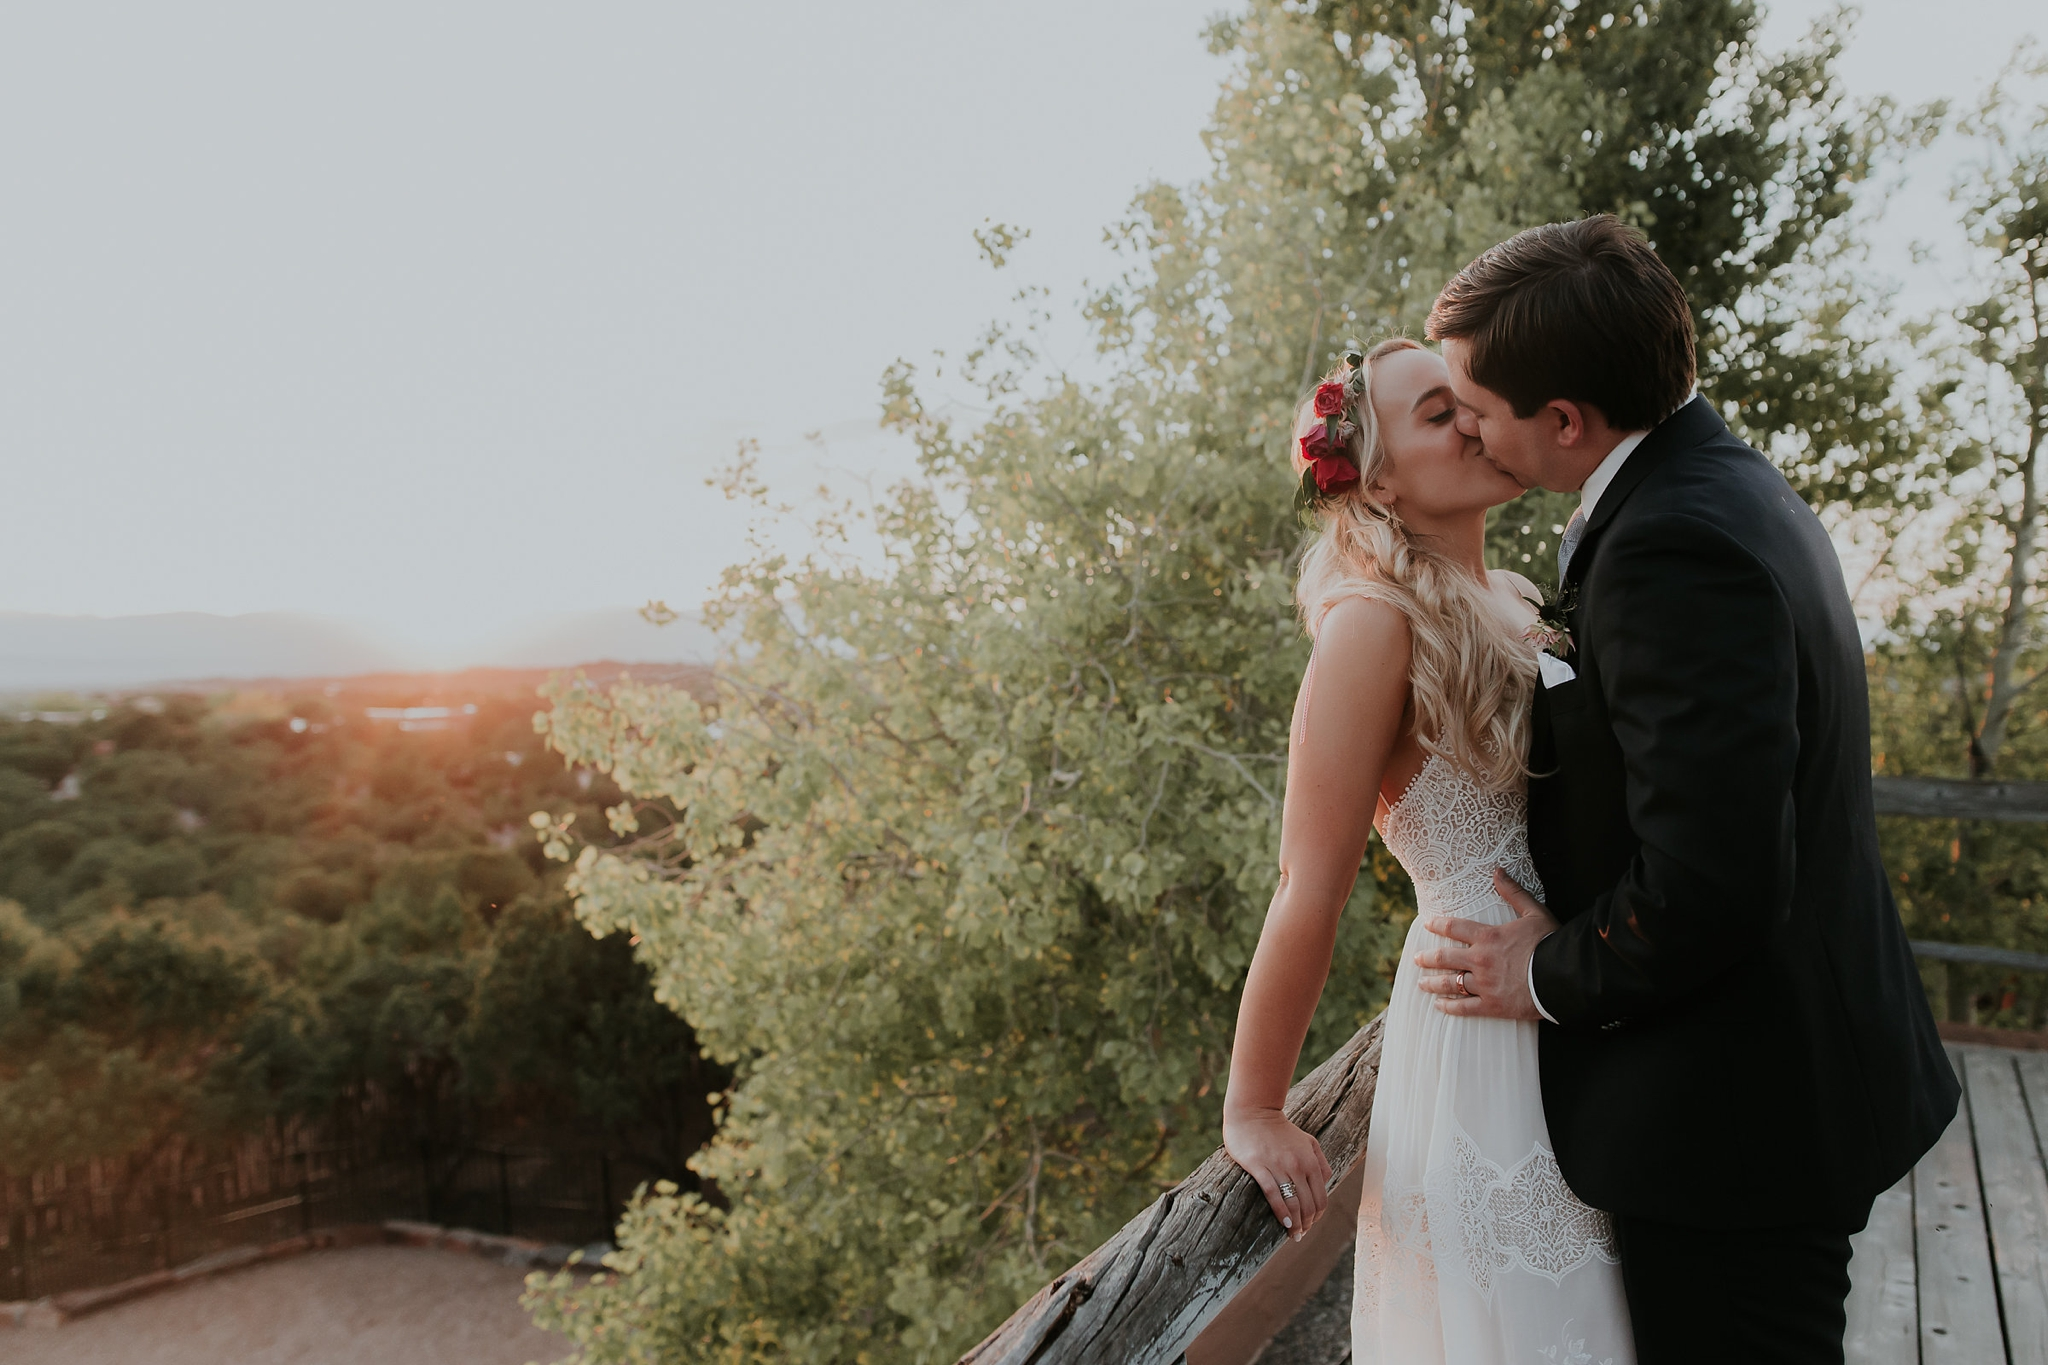 Alicia+lucia+photography+-+albuquerque+wedding+photographer+-+santa+fe+wedding+photography+-+new+mexico+wedding+photographer+-+new+mexico+wedding+-+albuquerque+wedding+-+santa+fe+wedding+-+wedding+romantics_0013.jpg